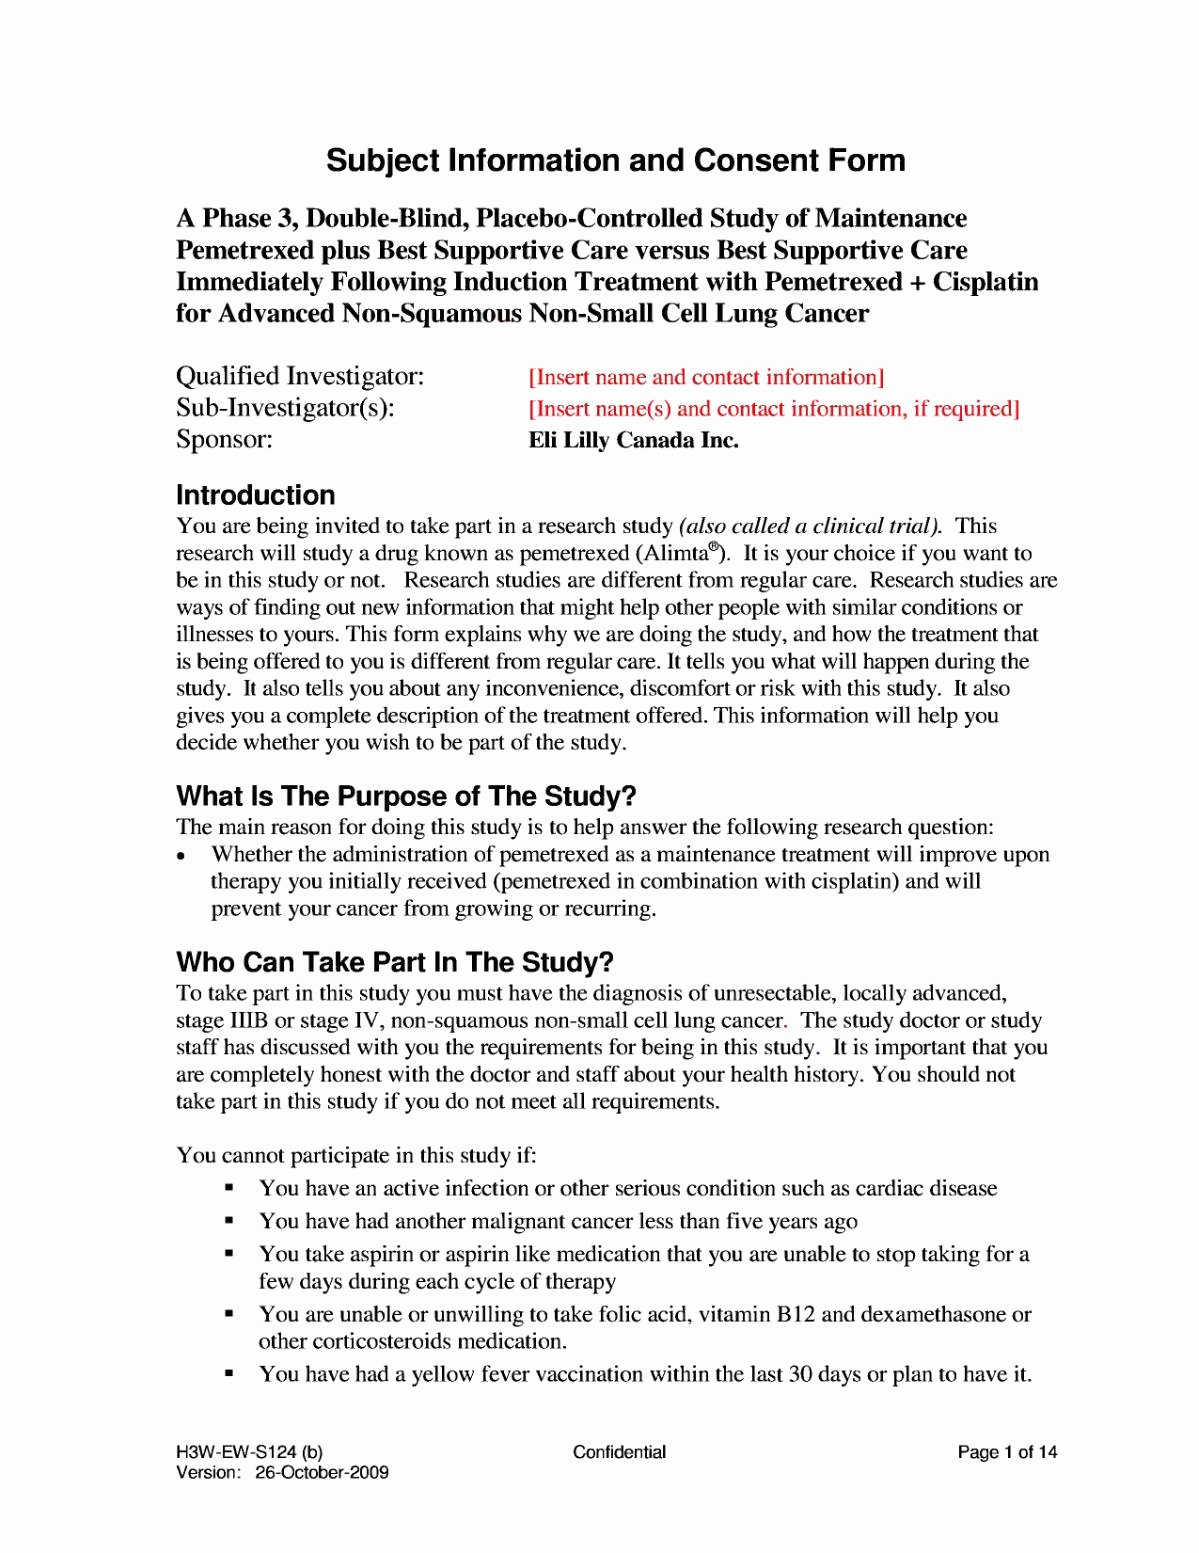 Photo Consent form Template Unique Informed Consent